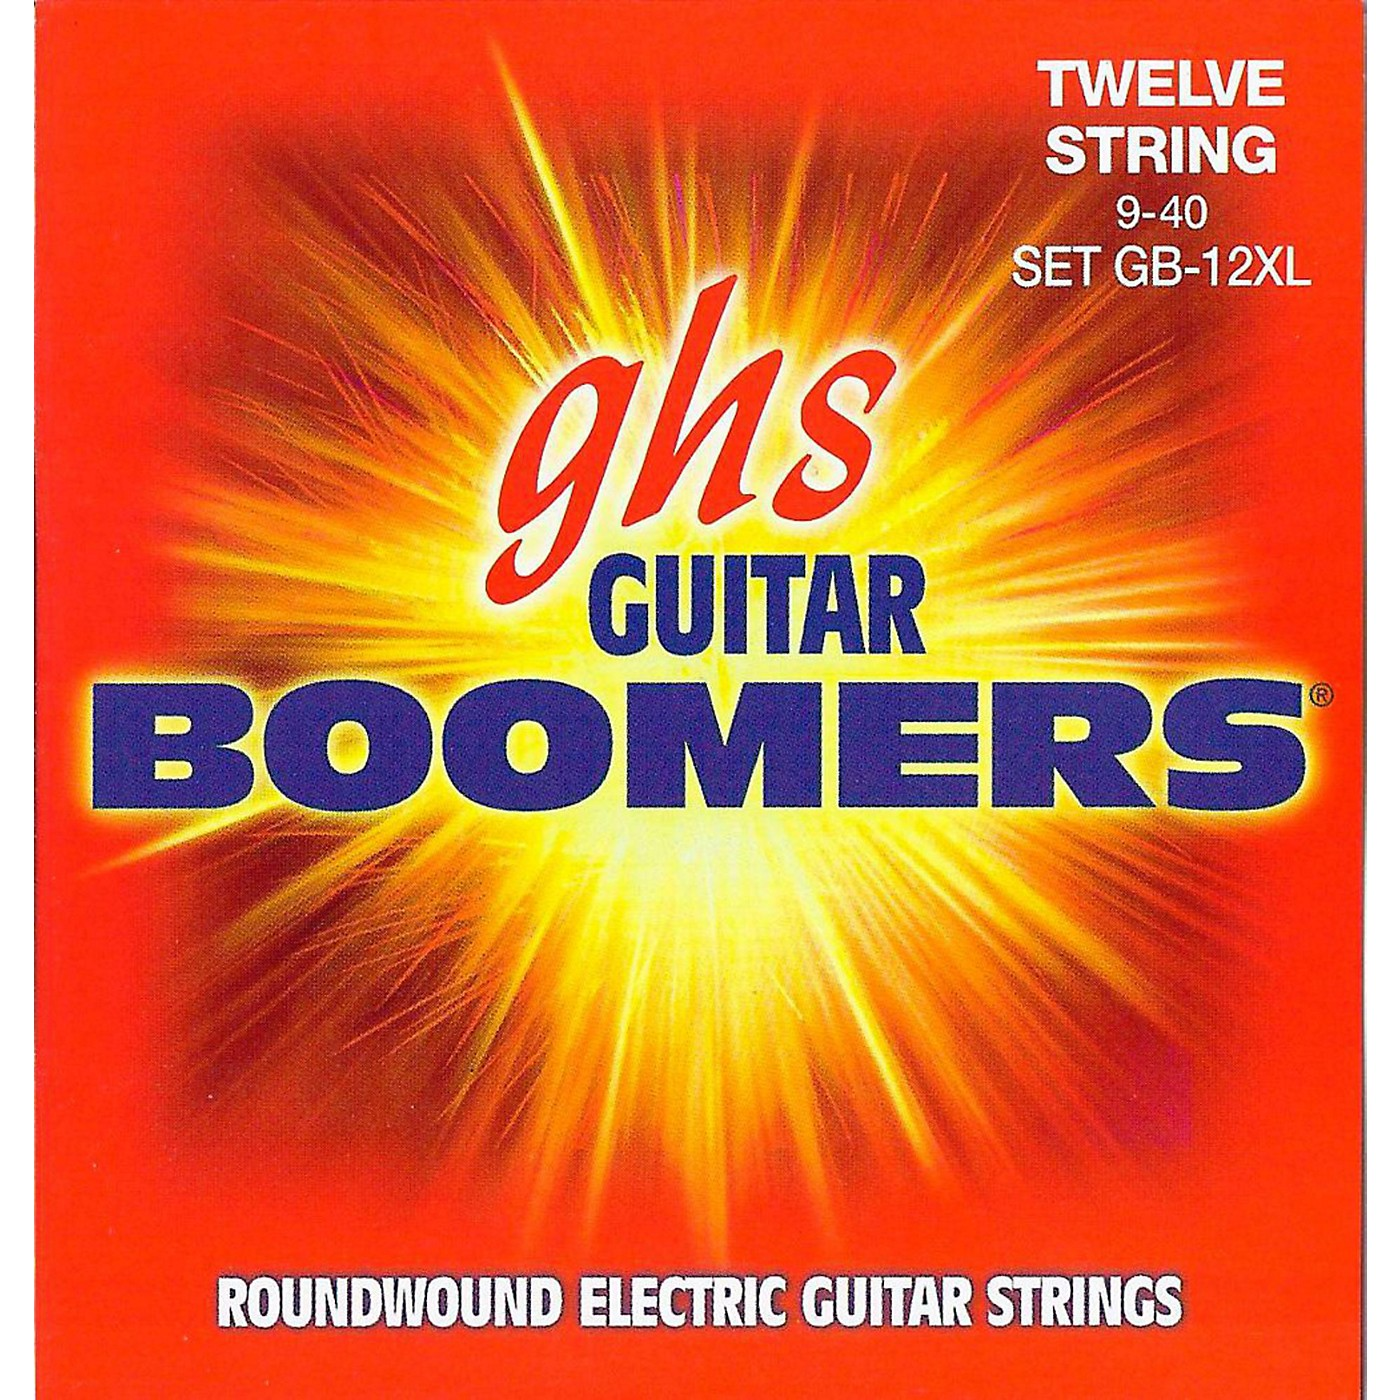 GHS Boomer 12 String Extra Light Electric Guitar Set (9-40) thumbnail